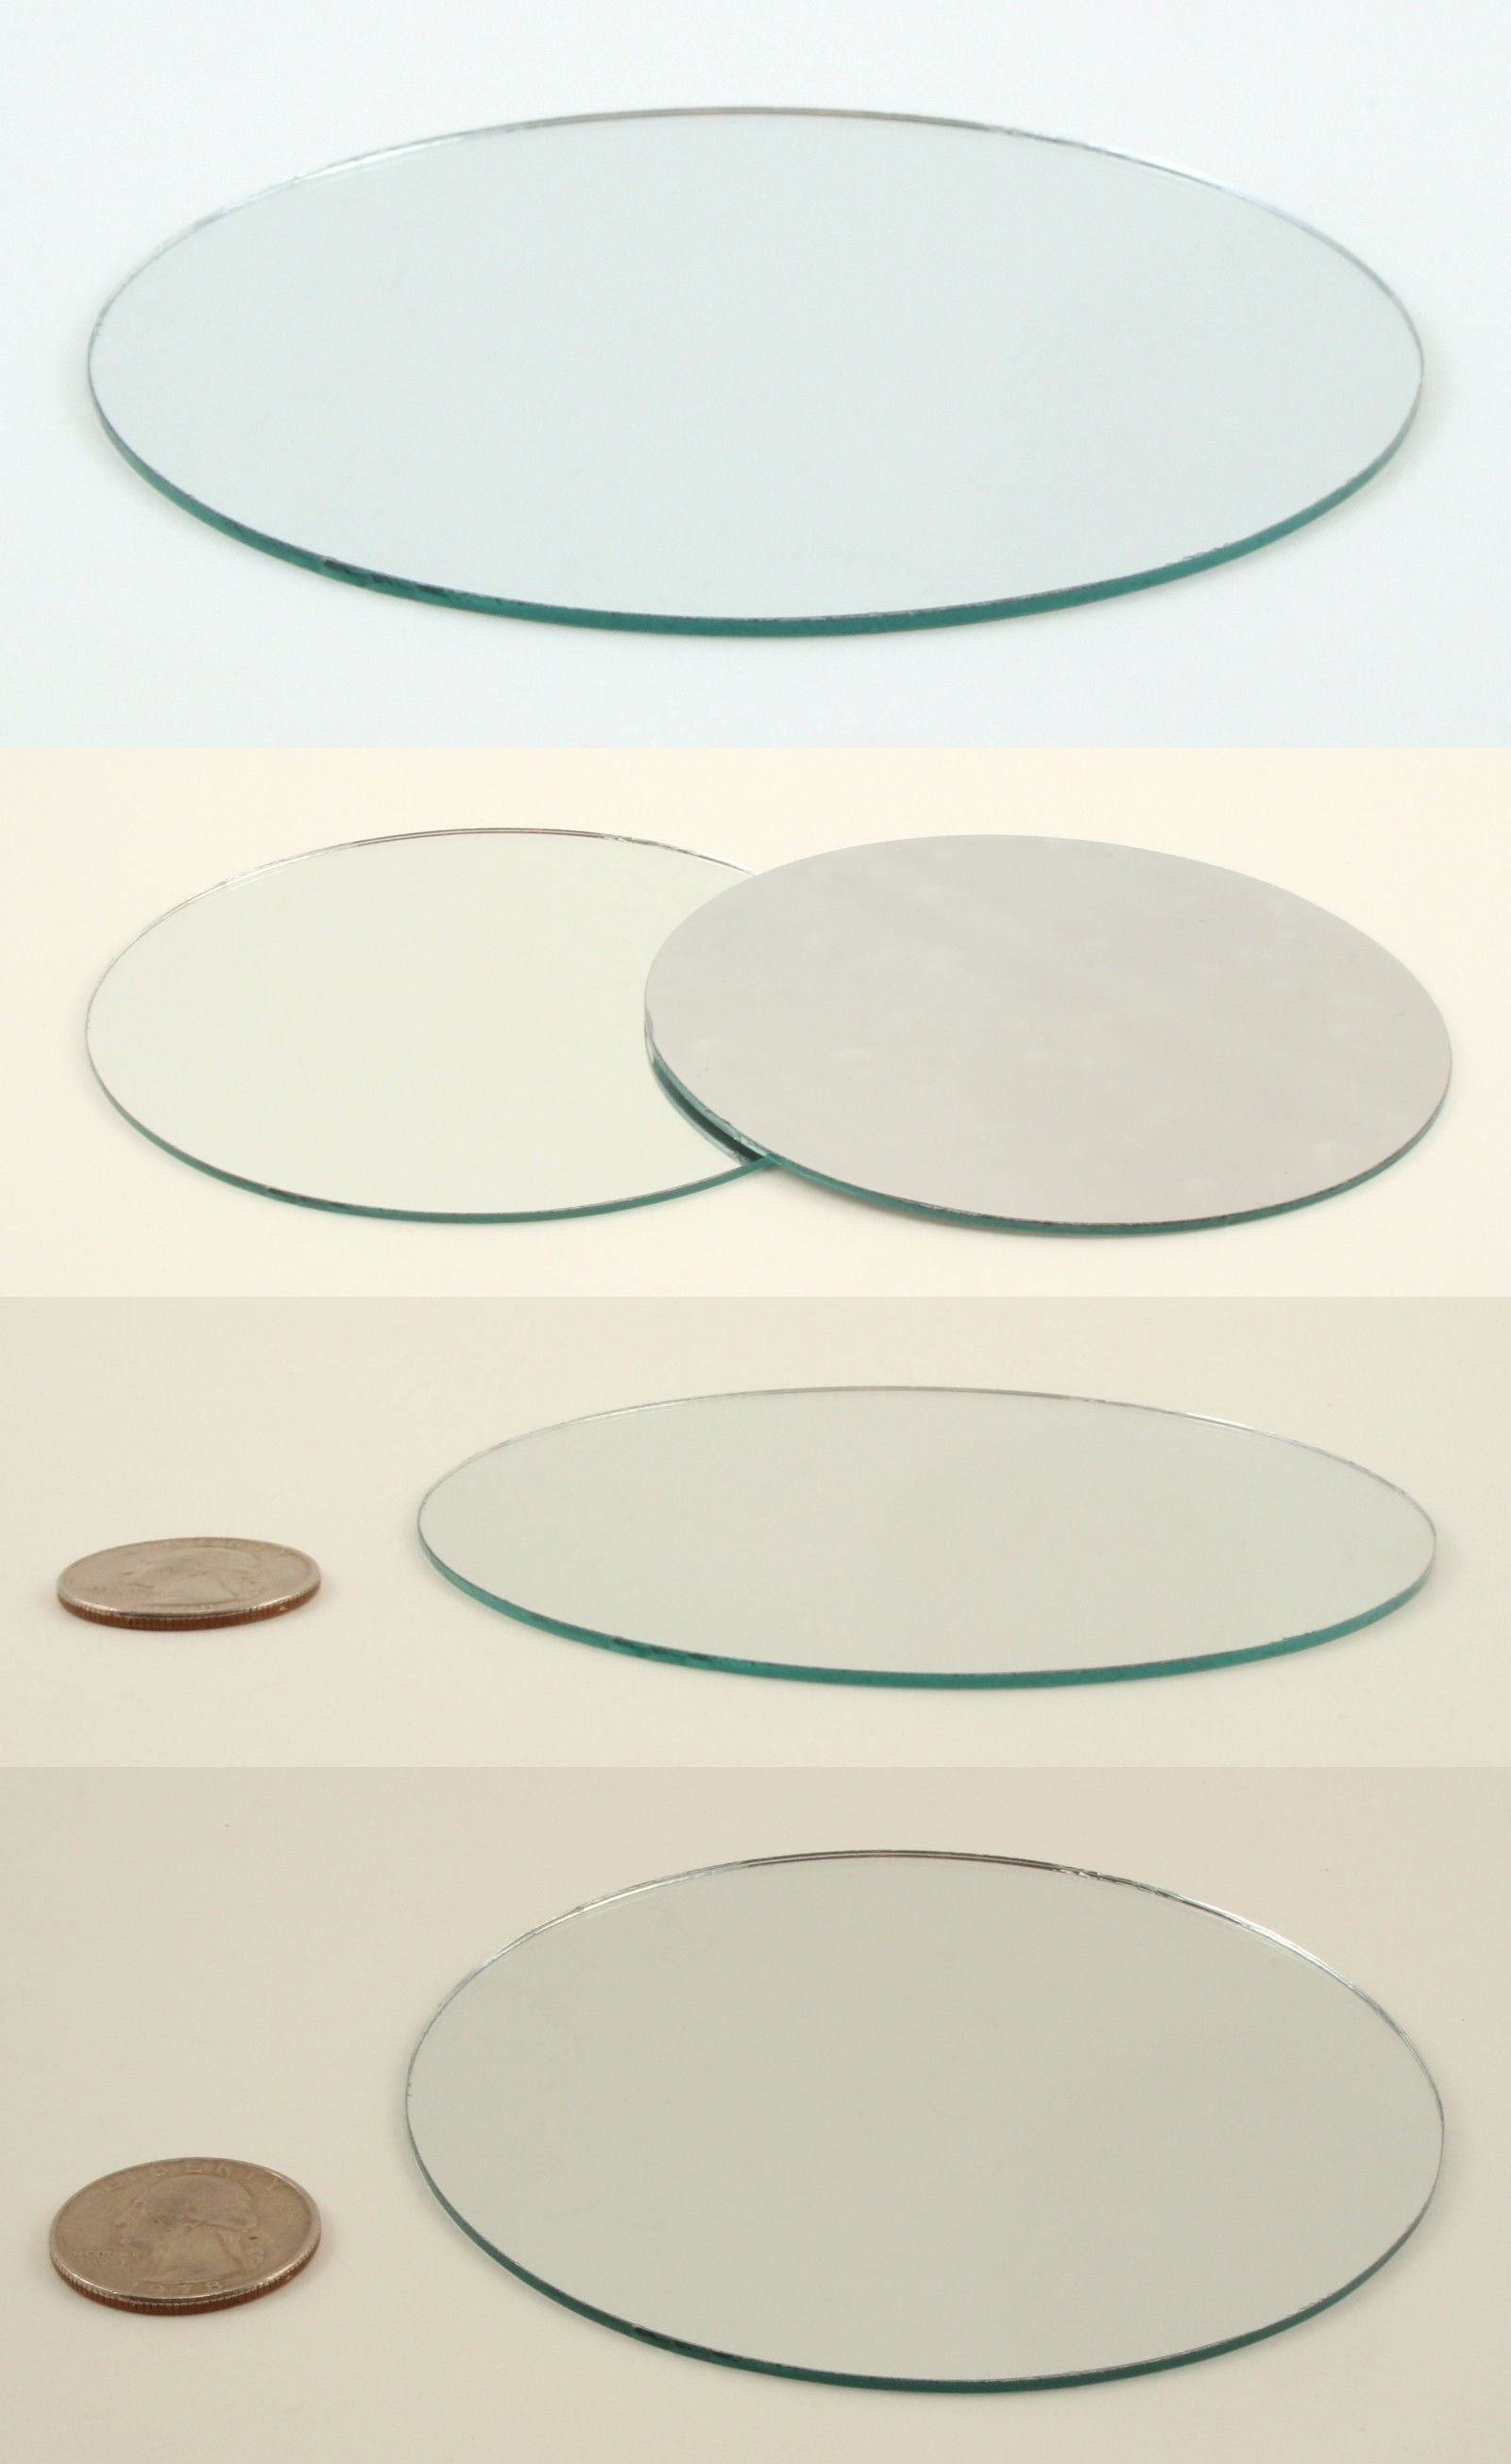 Small round mirrors for crafts - Glass And Mosaic Tiles 160646 4 Inch Glass Craft Small Round Mirrors Bulk 100 Pieces